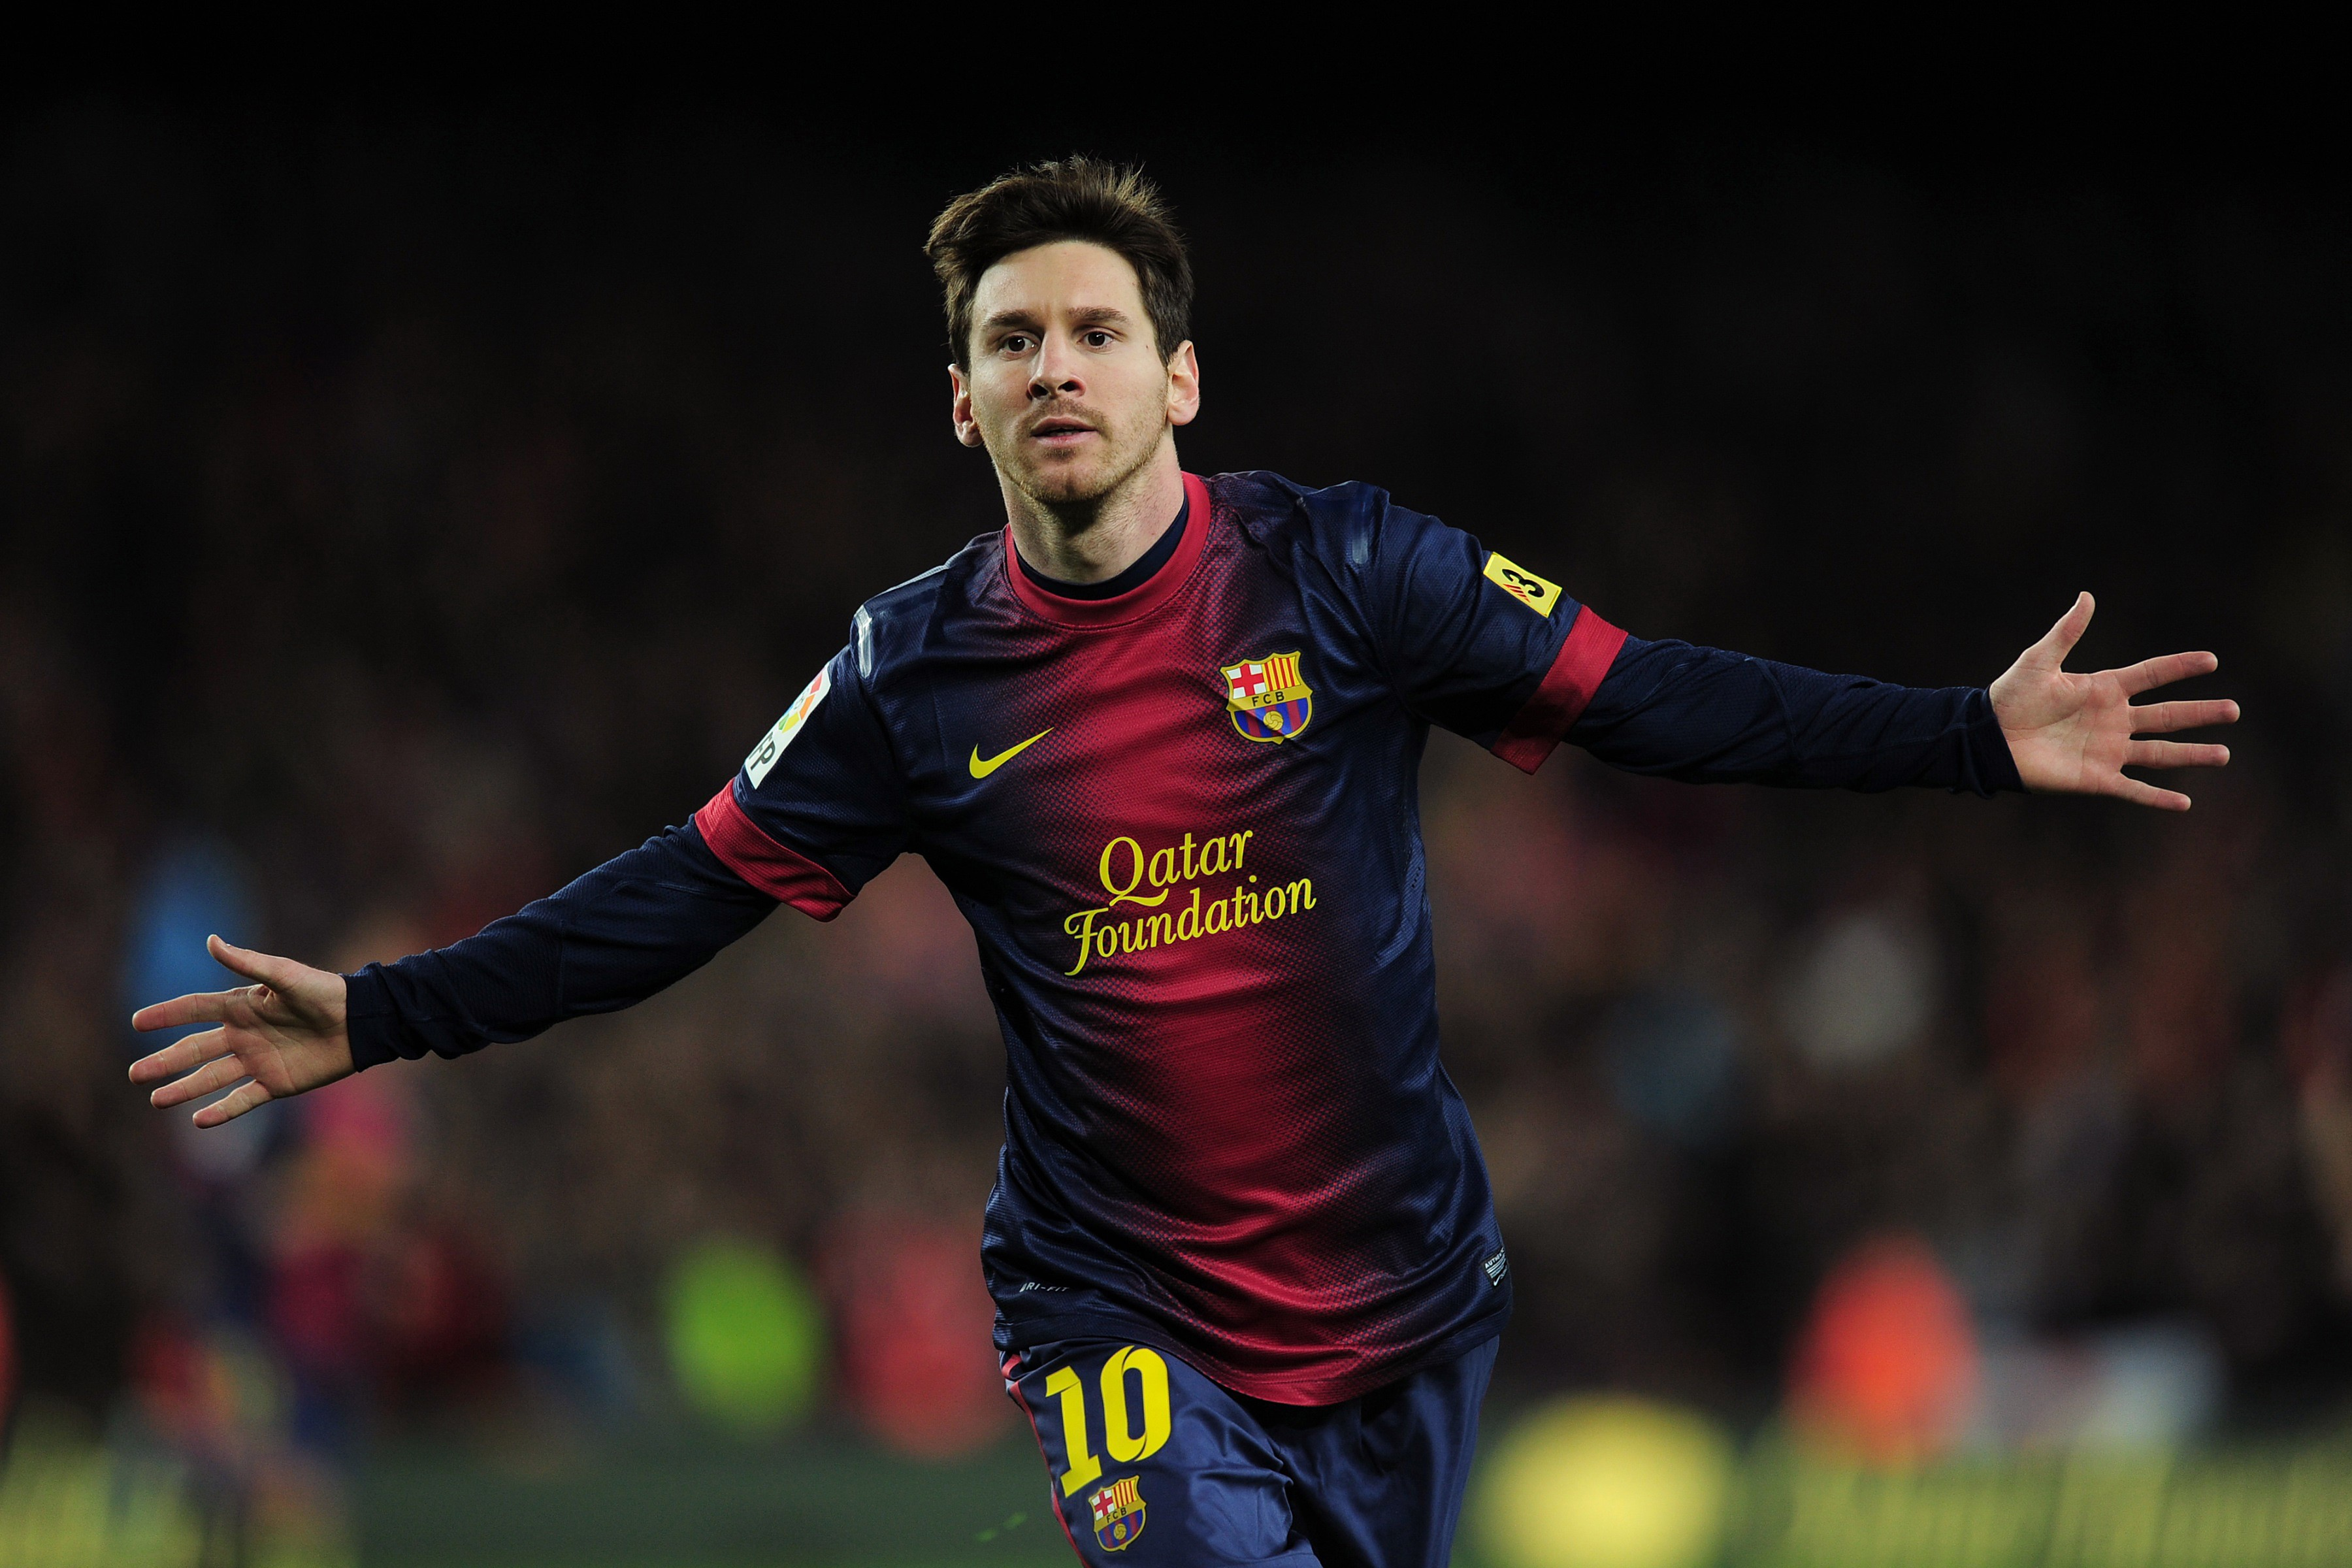 download our latest collection of messi hd wallpapers to download 3600x2400